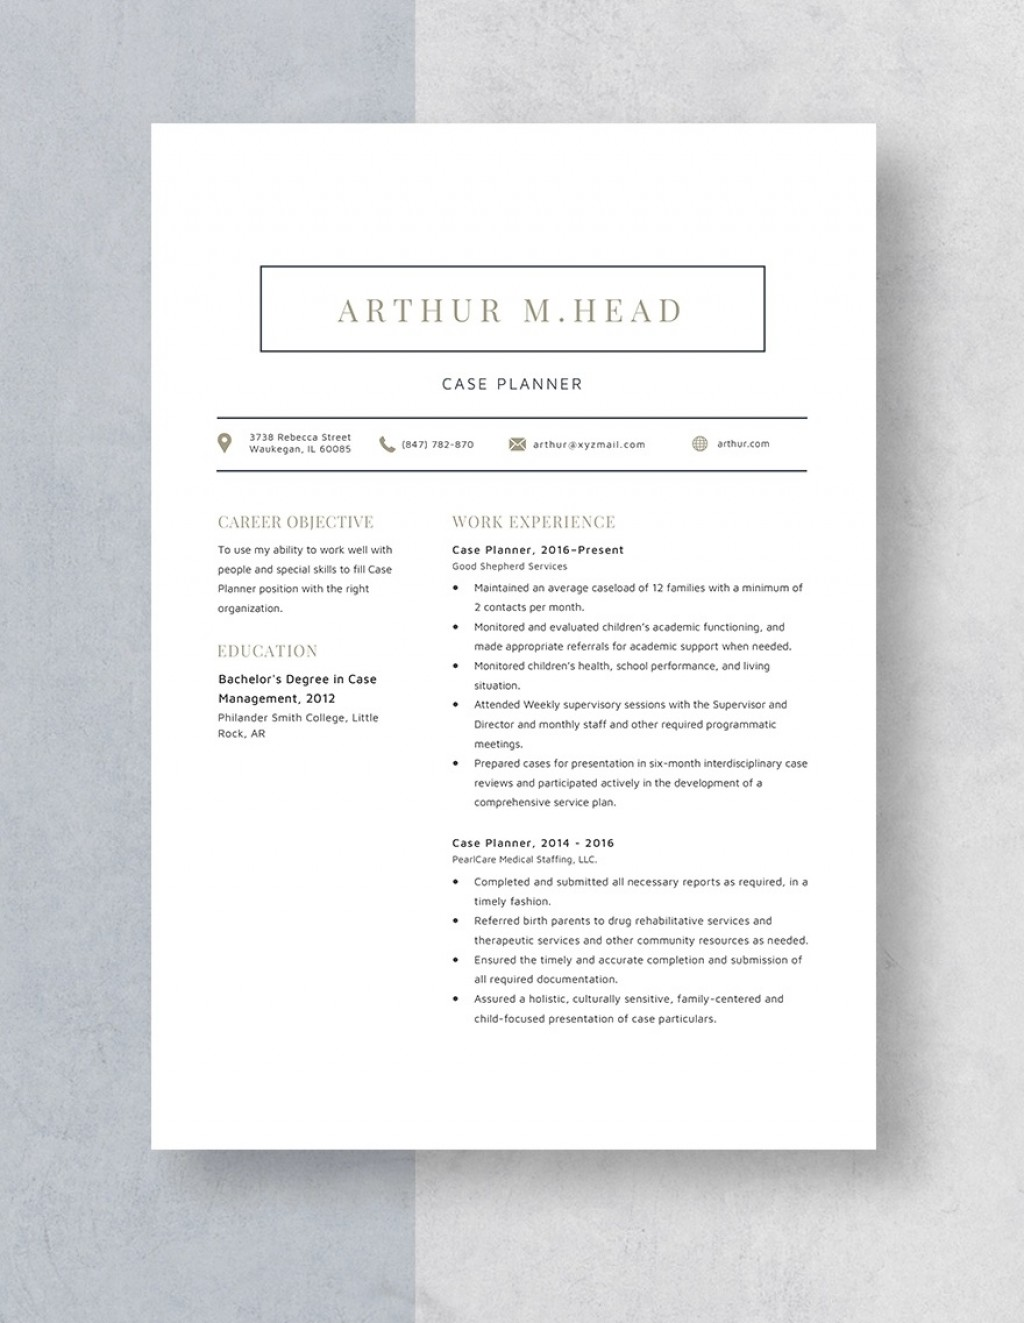 Template Case Planner Resume Idea Large